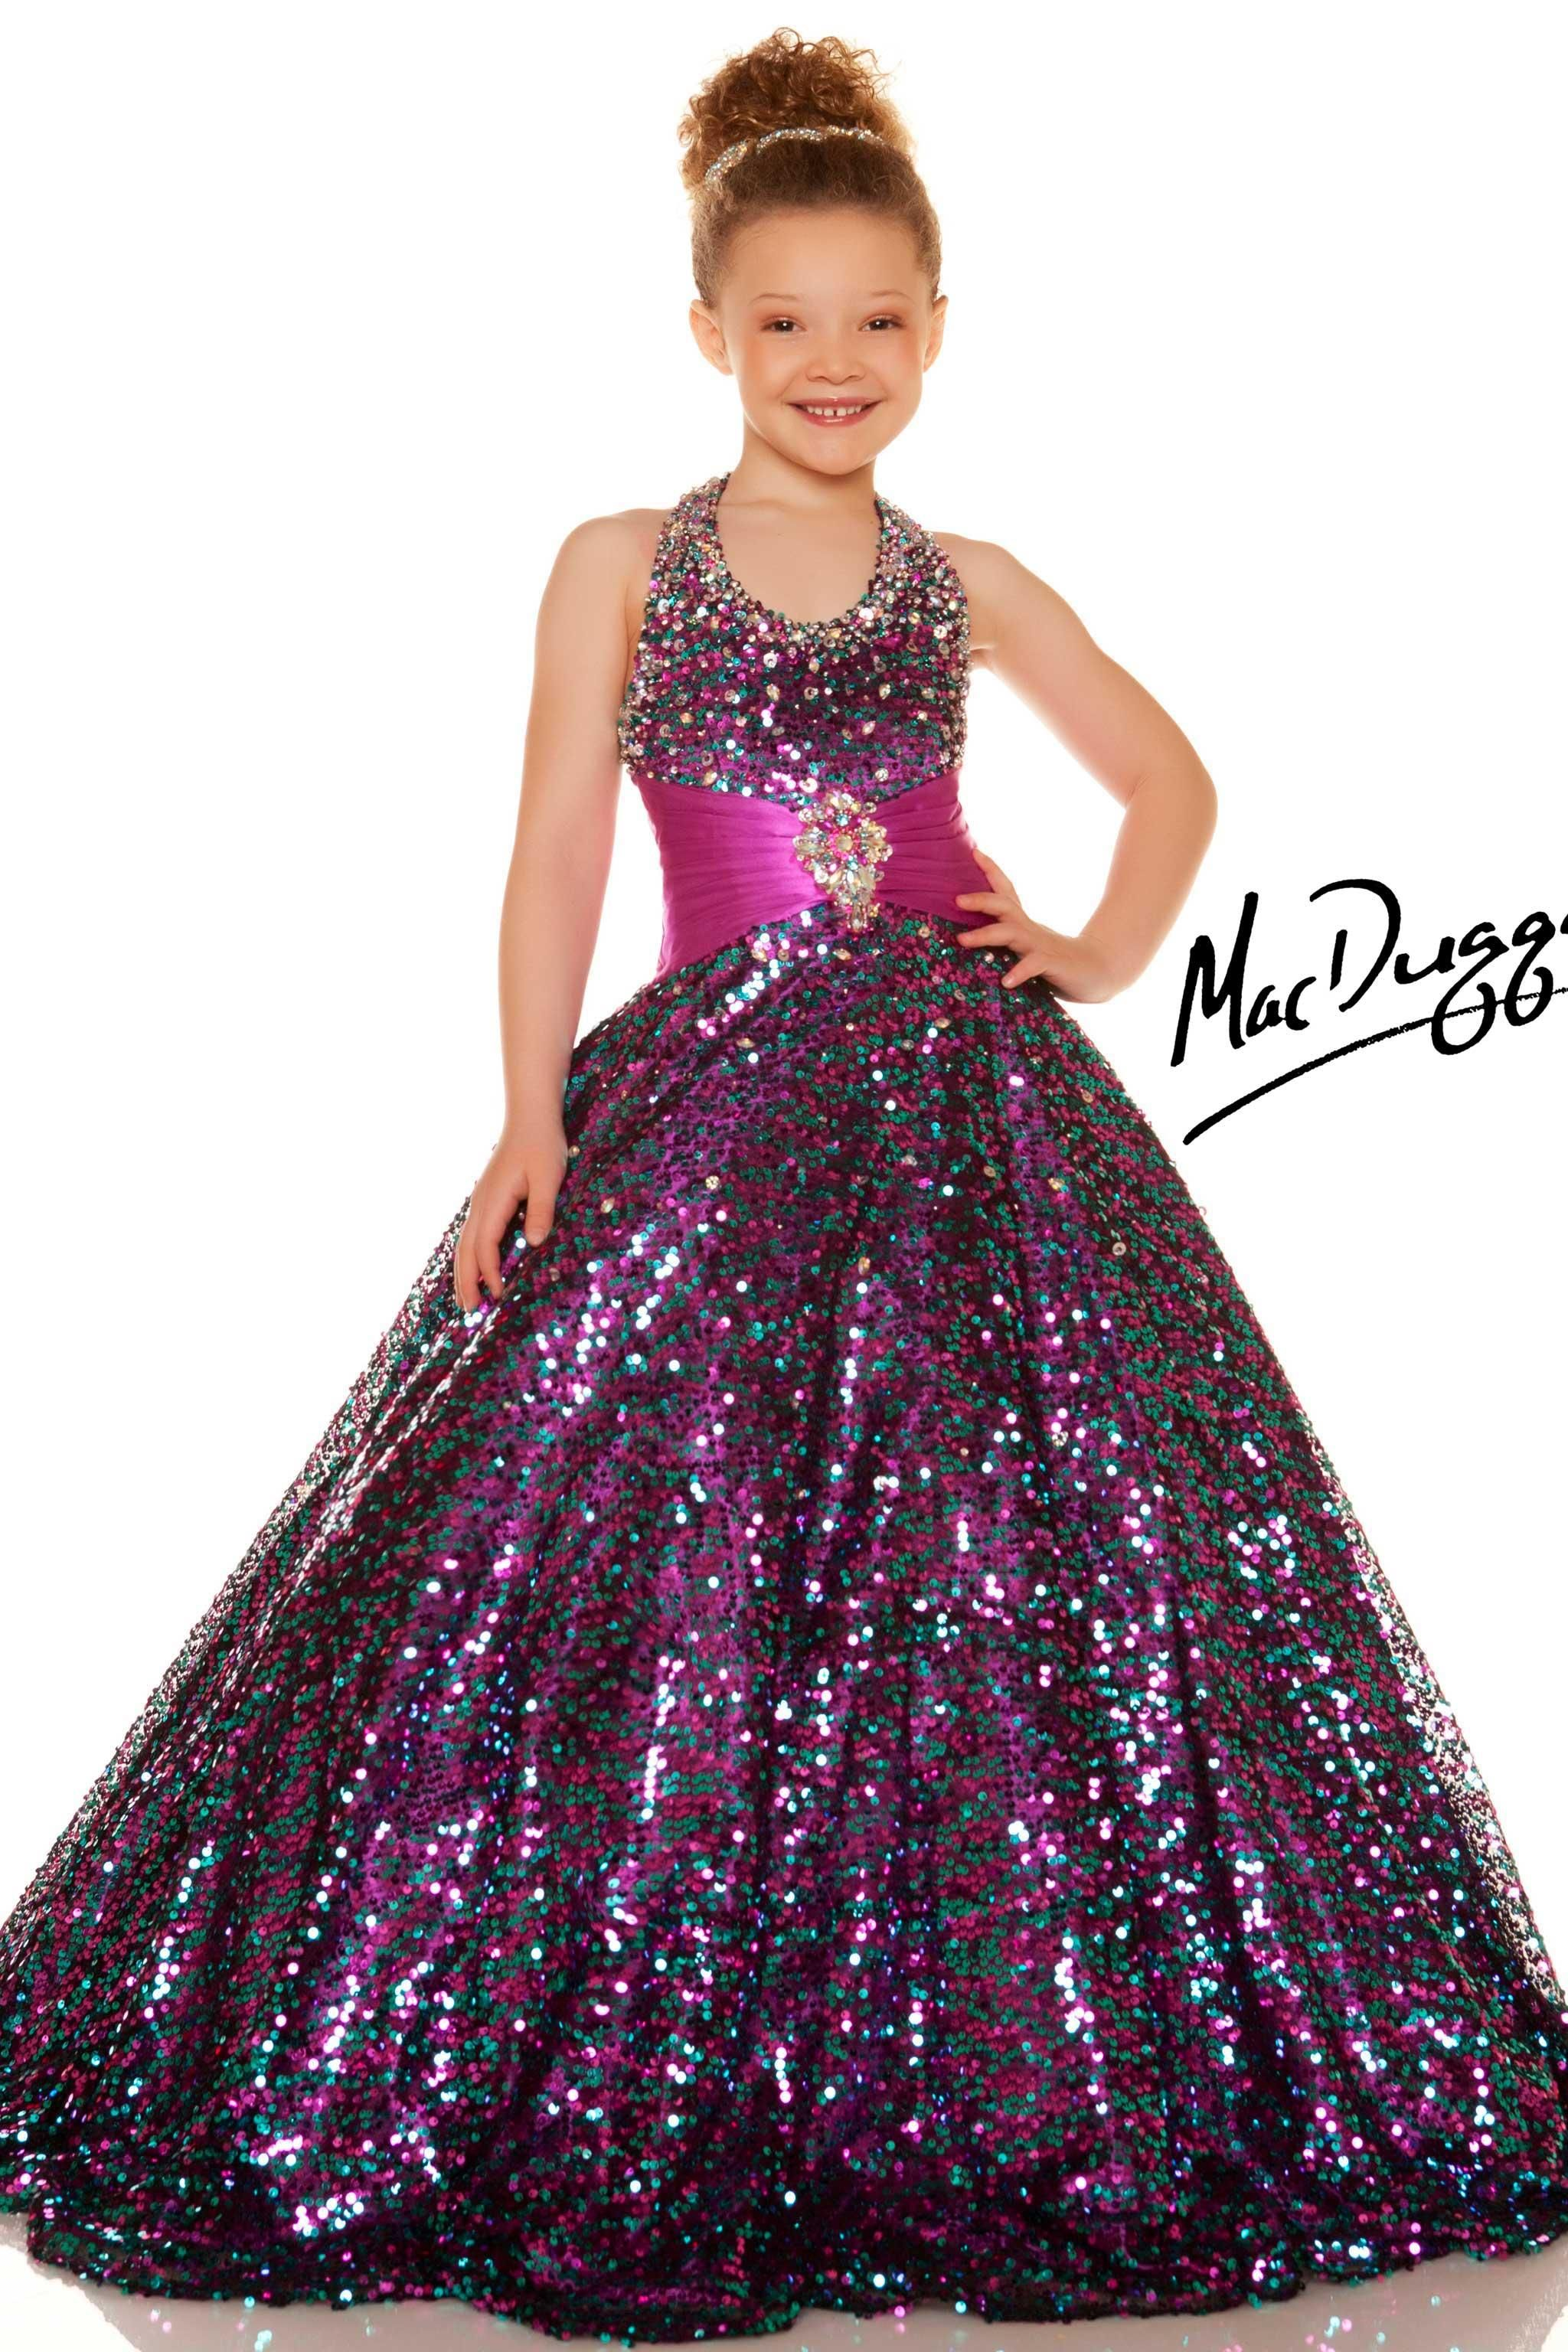 Girls Sequined Gold Pageant Dess - 42617S | Mac Duggal | Pageant ...